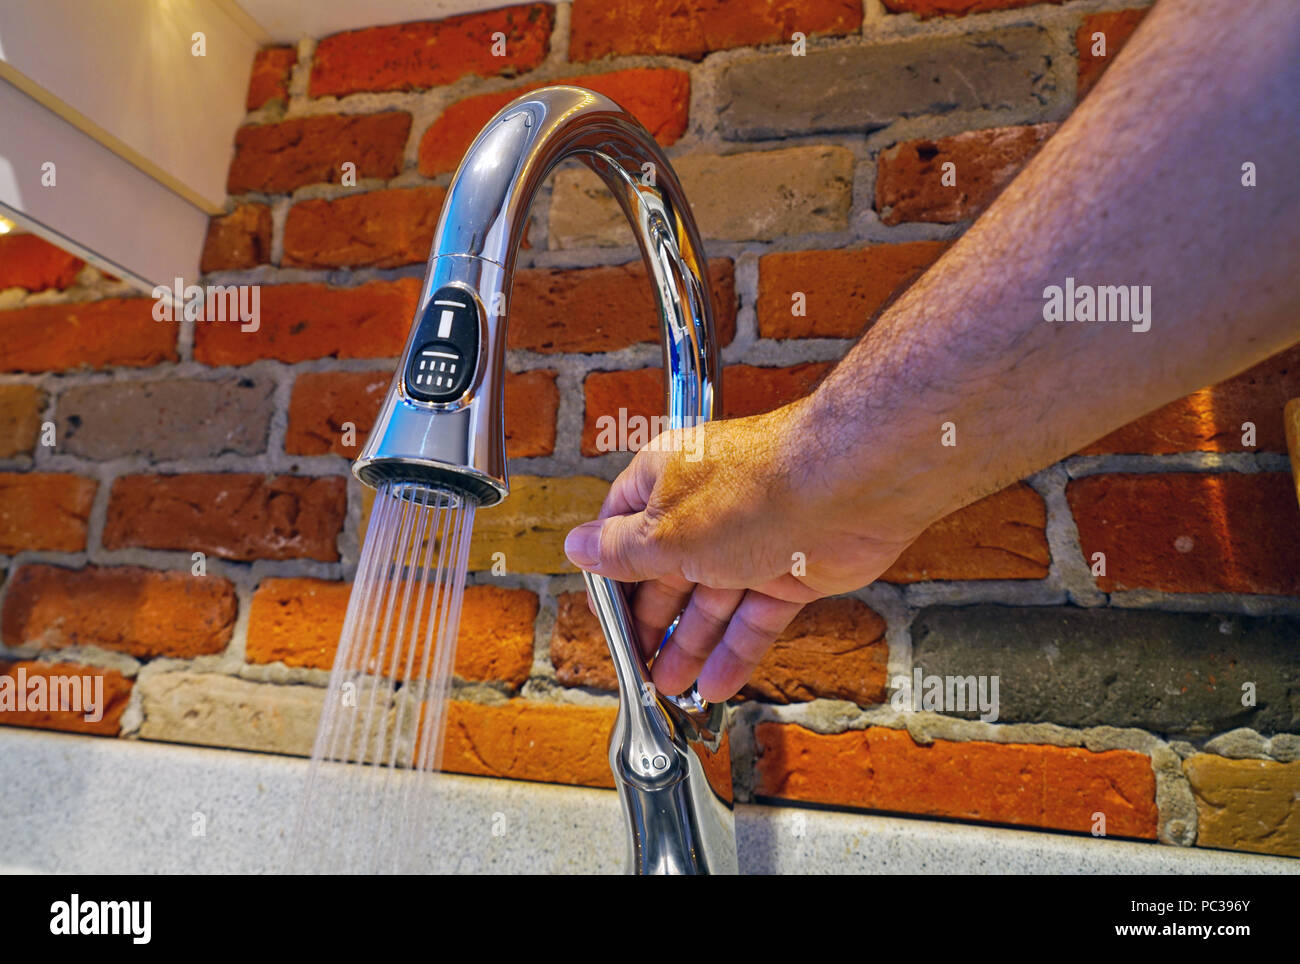 Montreal, Canada, July 31, 2018.Hand adjusting water flow out of kitchen faucet.Credit Mario Beauregard/Alamy Live News - Stock Image